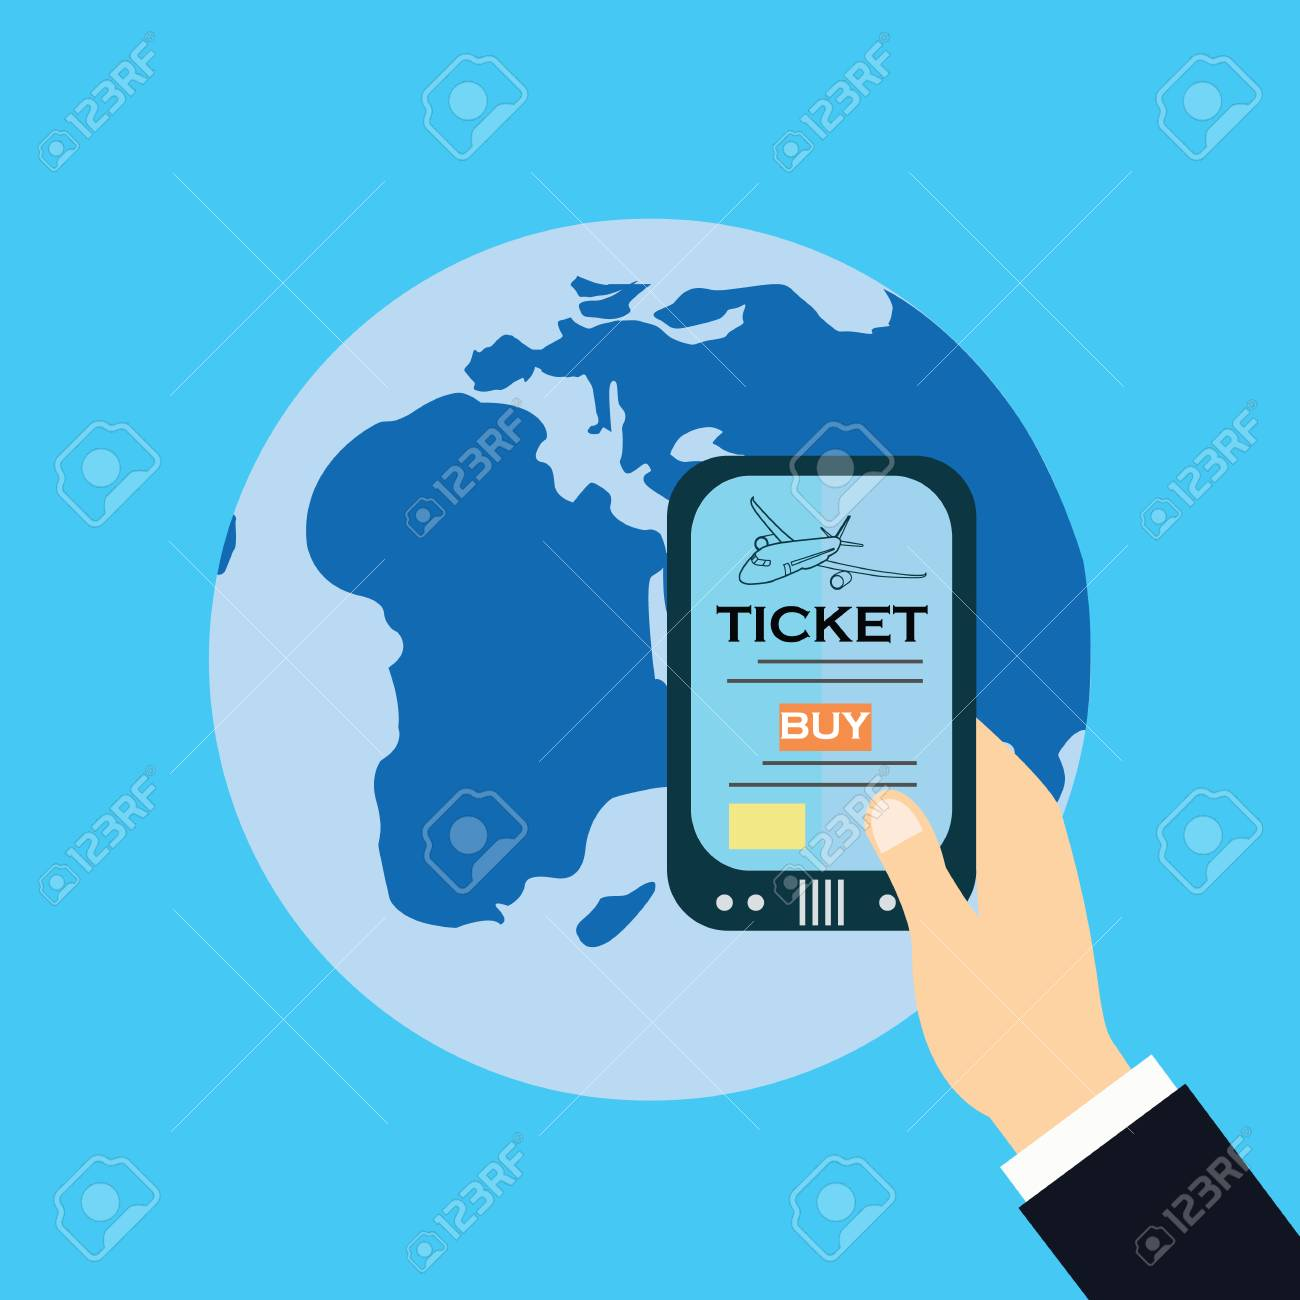 Buy ticket on line smart phone application globe world map travel buy ticket on line smart phone application globe world map travel vacation trip booking air gumiabroncs Images